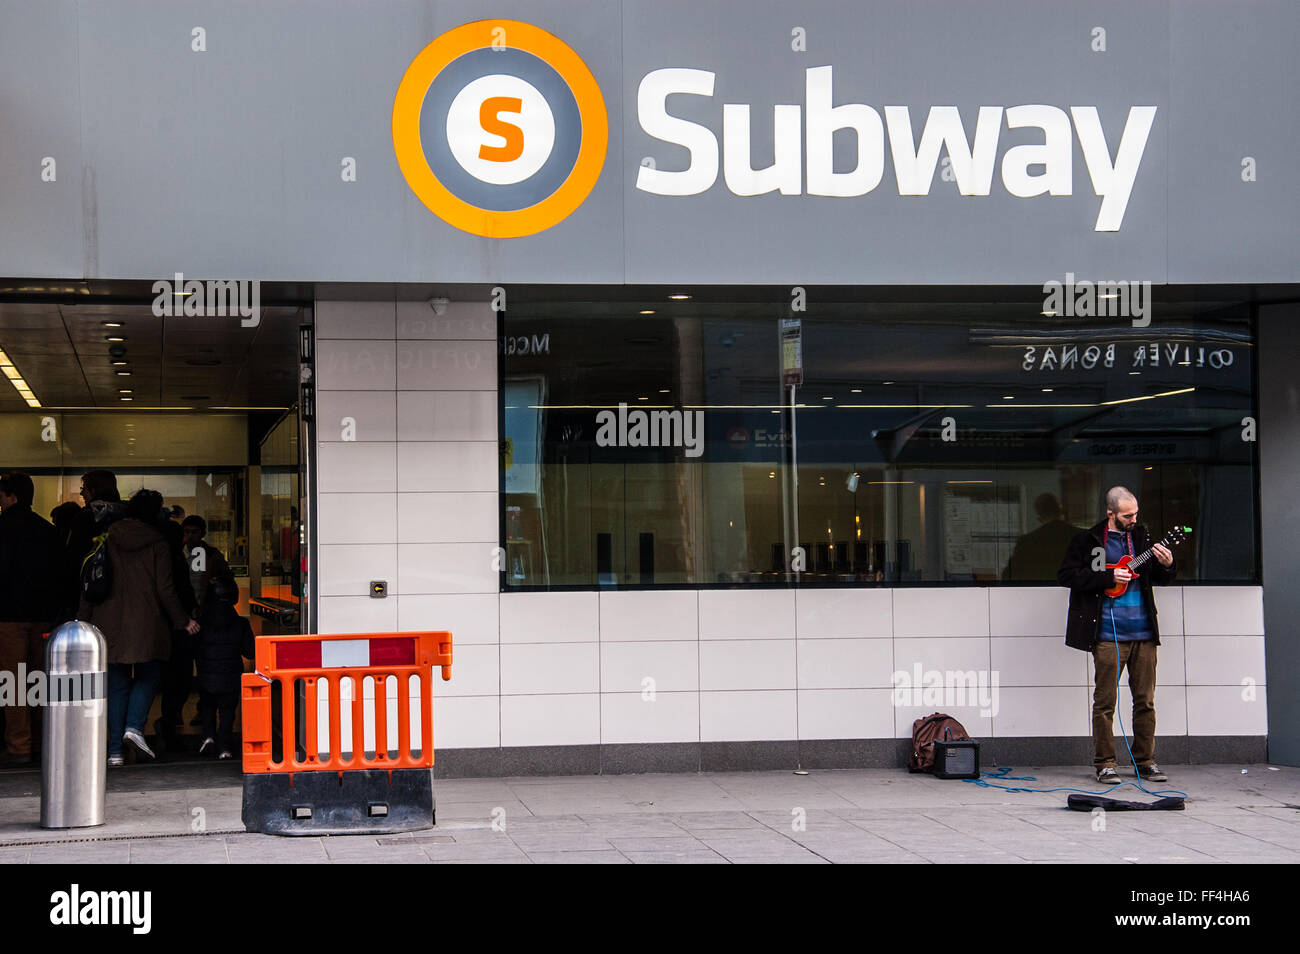 Entrance of the newly refurbished Glasgow subway in Byres road, West end. - Stock Image